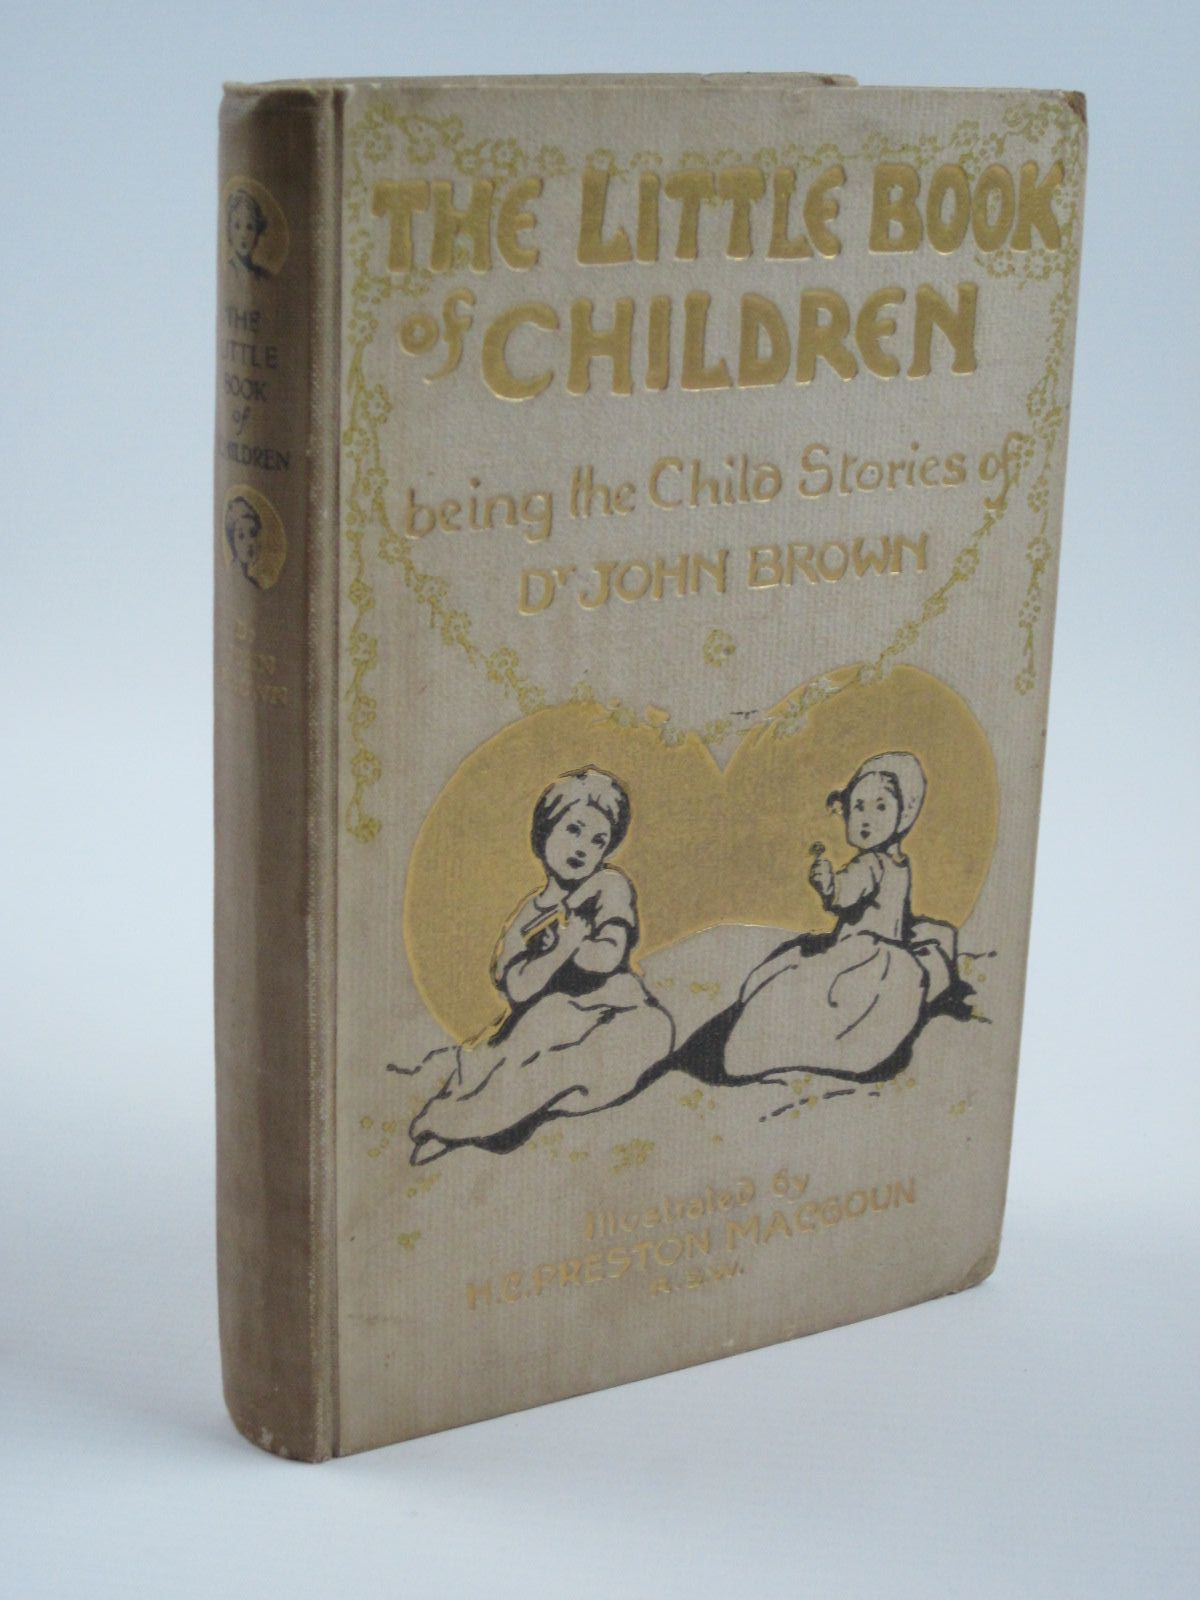 Photo of THE LITTLE BOOK OF CHILDREN written by Brown, John illustrated by MacGoun, H.C. Preston published by T.N. Foulis (STOCK CODE: 1310065)  for sale by Stella & Rose's Books